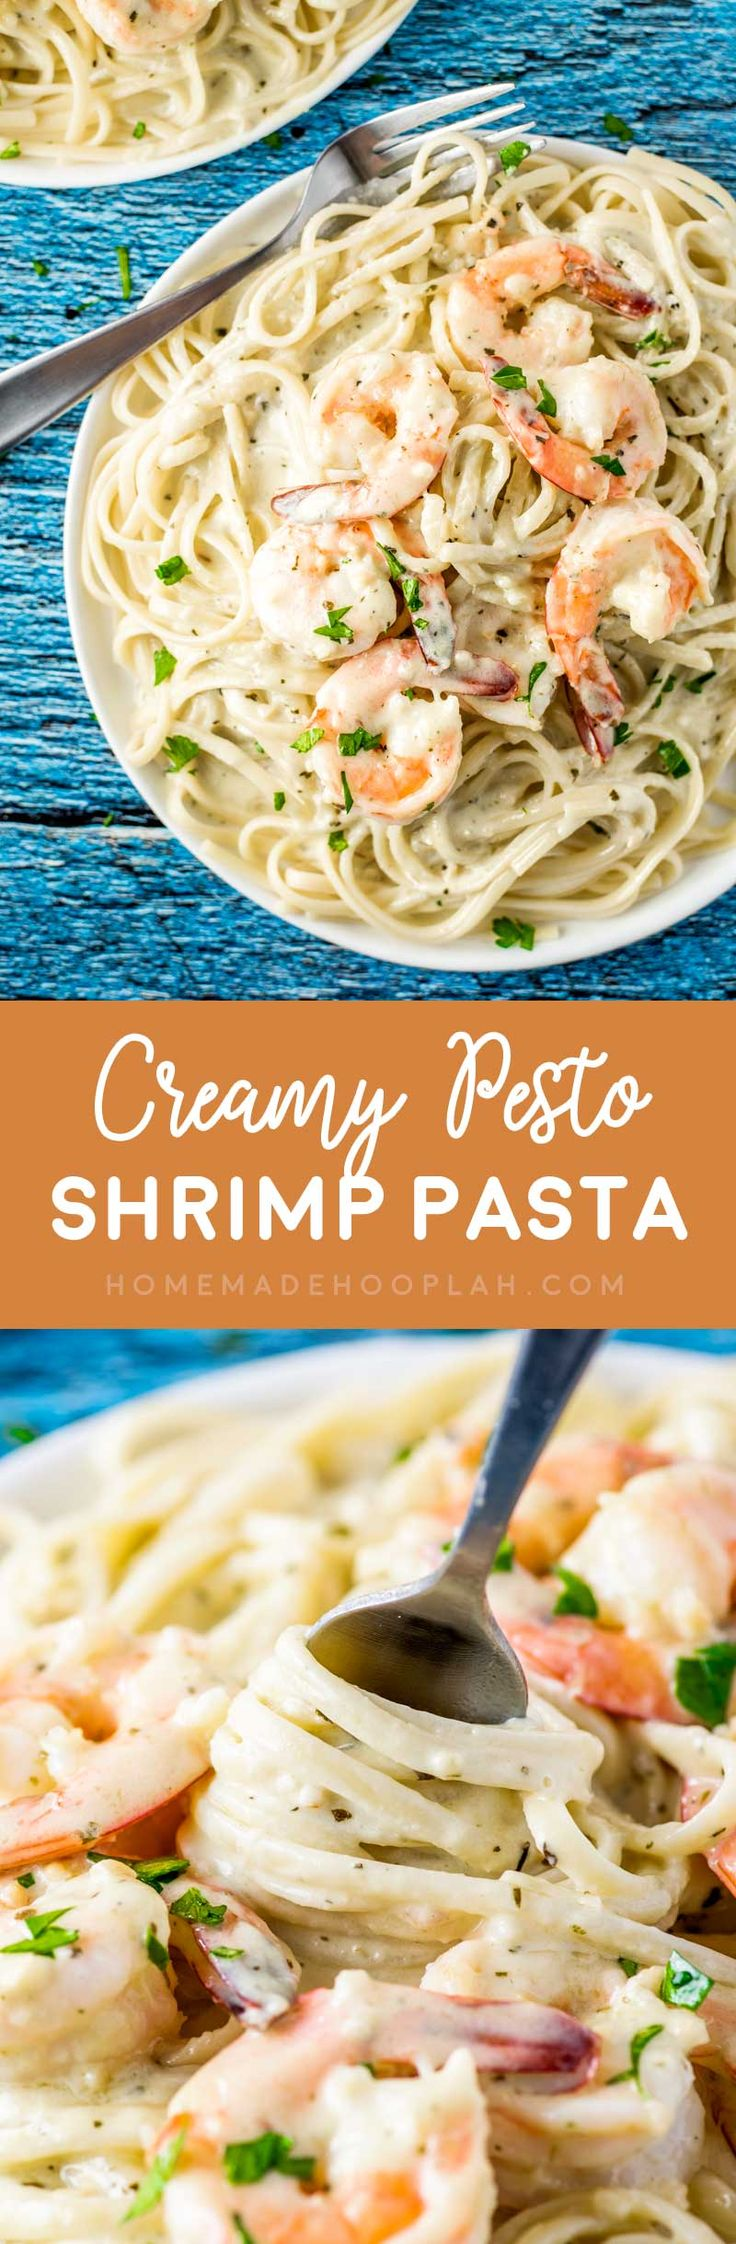 Creamy Pesto Shrimp Pasta! Tender shrimp pasta in a creamy pesto sauce makes up this one-pot 30-minutes-or less recipe. A perfect dinner for seafood lovers any night of the week!   HomemadeHooplah.com